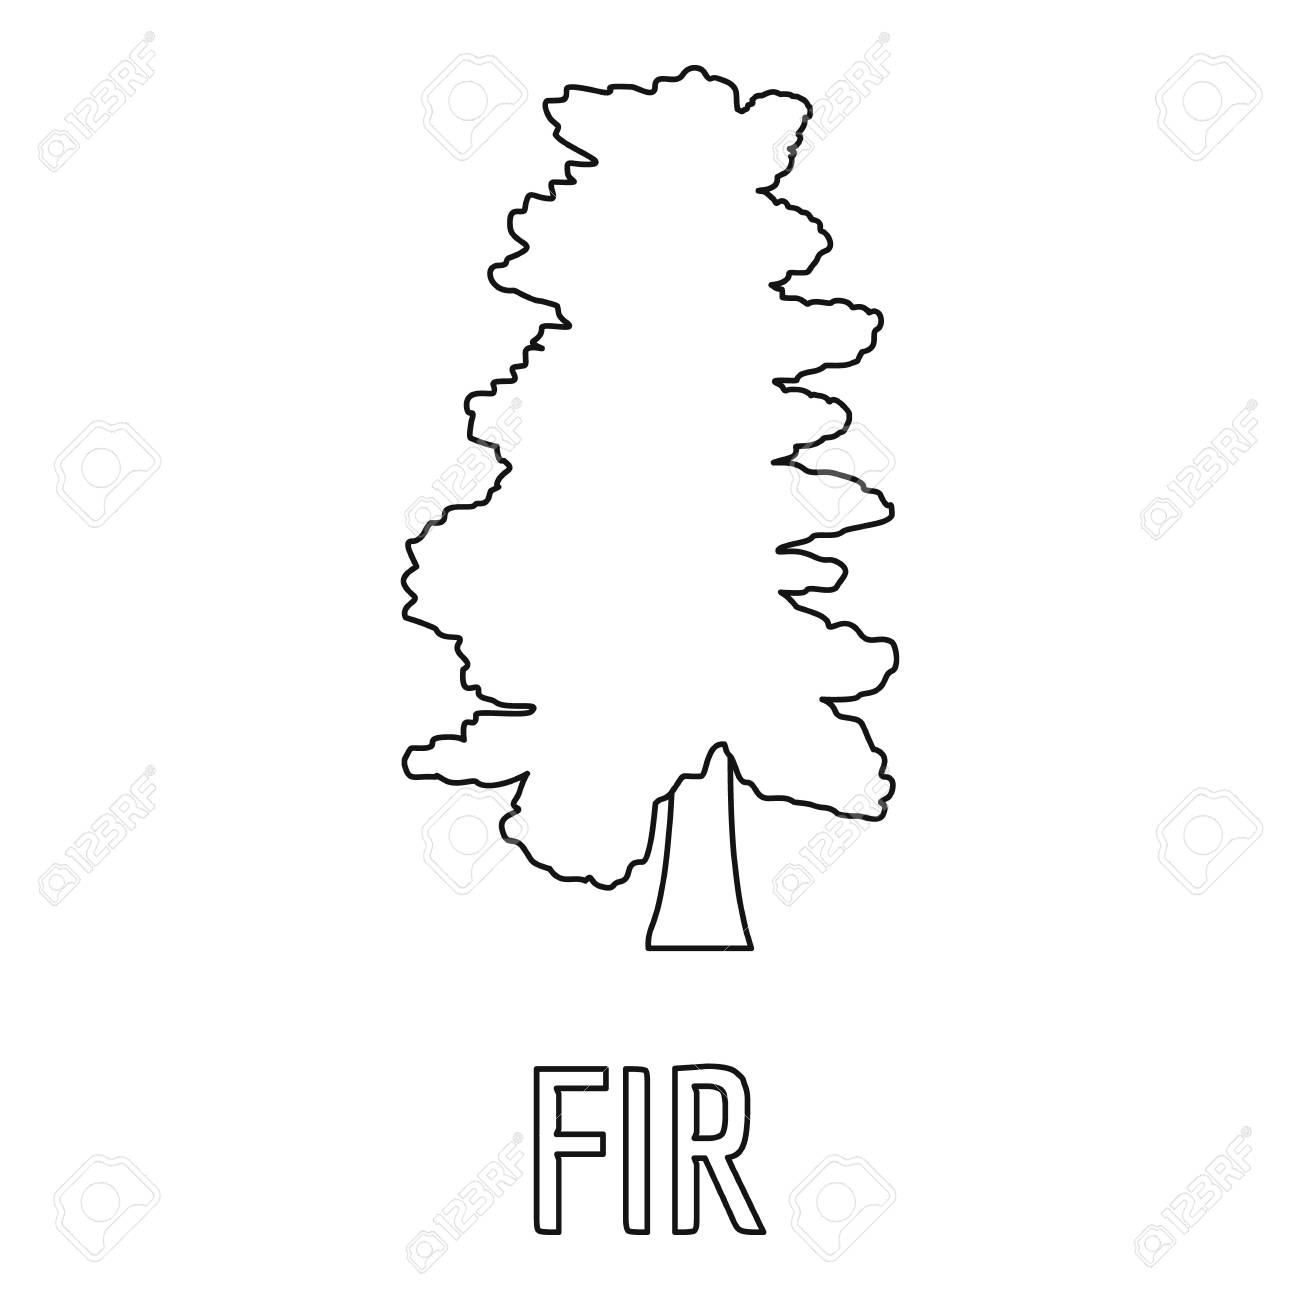 fir tree icon outline illustration of fir tree icon for web stock  fir tree icon outline illustration of fir tree icon for web stock illustration 105741353